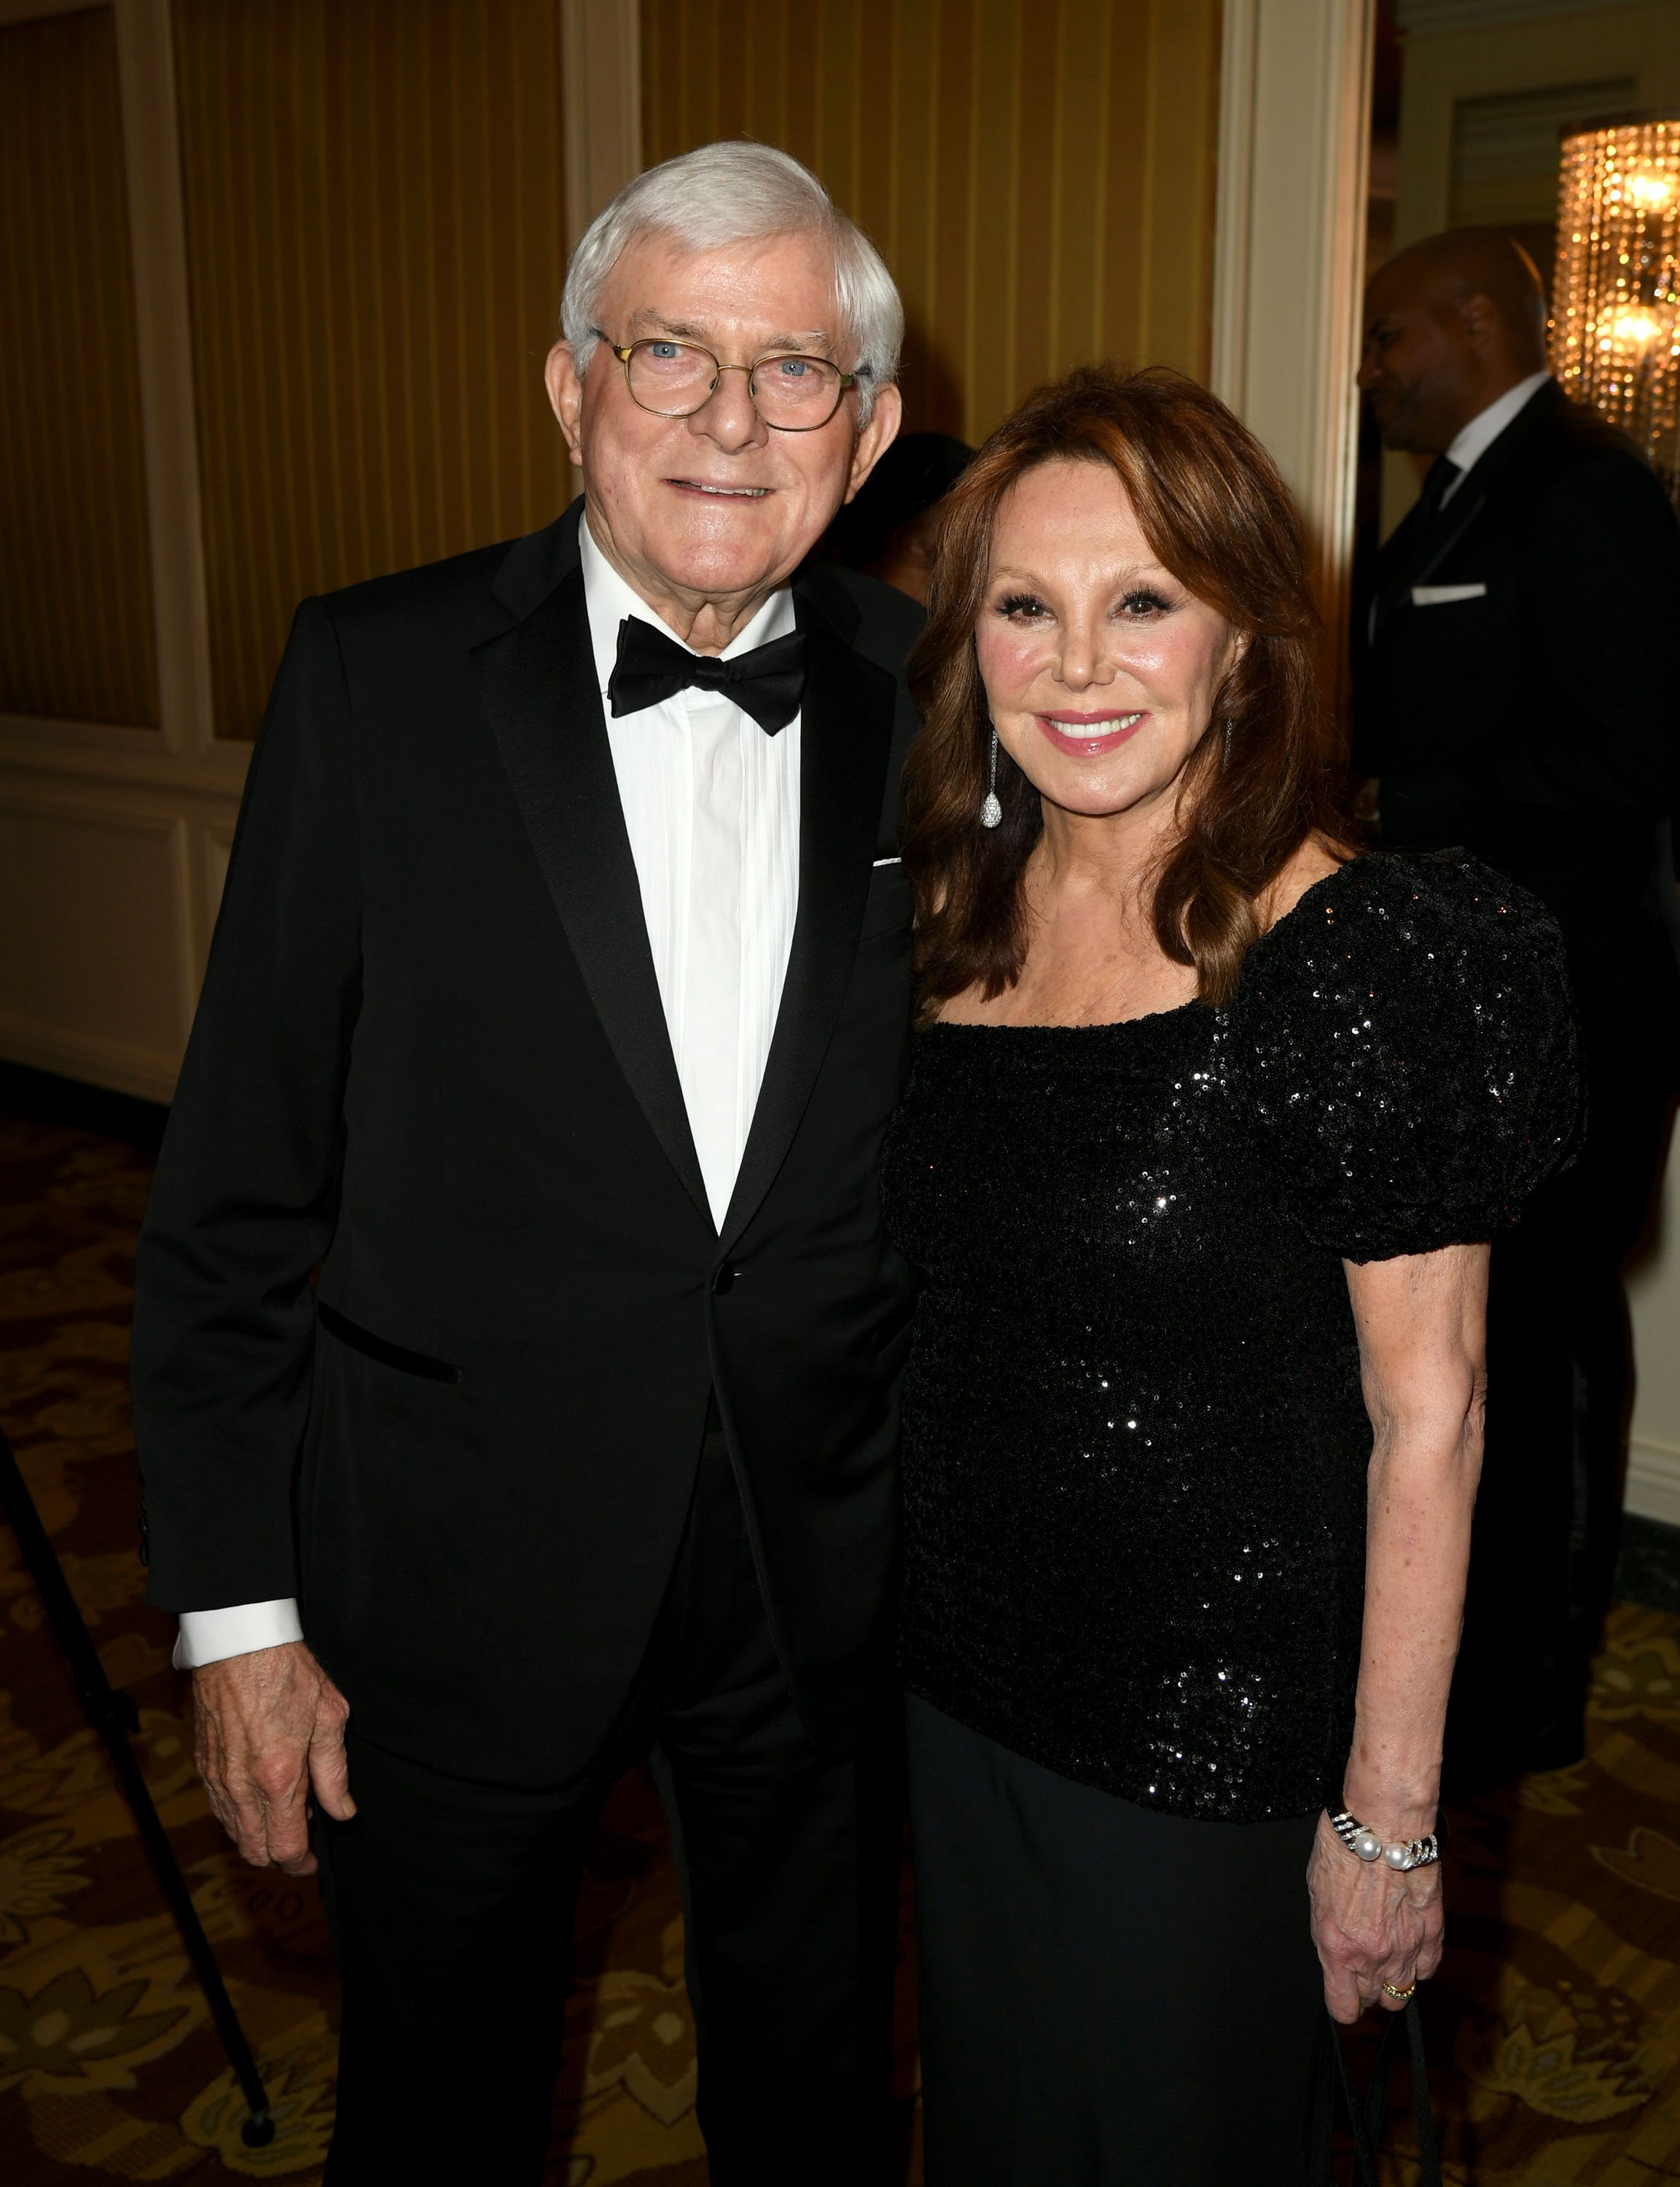 Phil Donahue and Marlo Thomas arrive at the American Icon Awards at the Beverly Wilshire Four Seasons Hotel on May 19, 2019 in Beverly Hills, California. | Photo: GettyImages